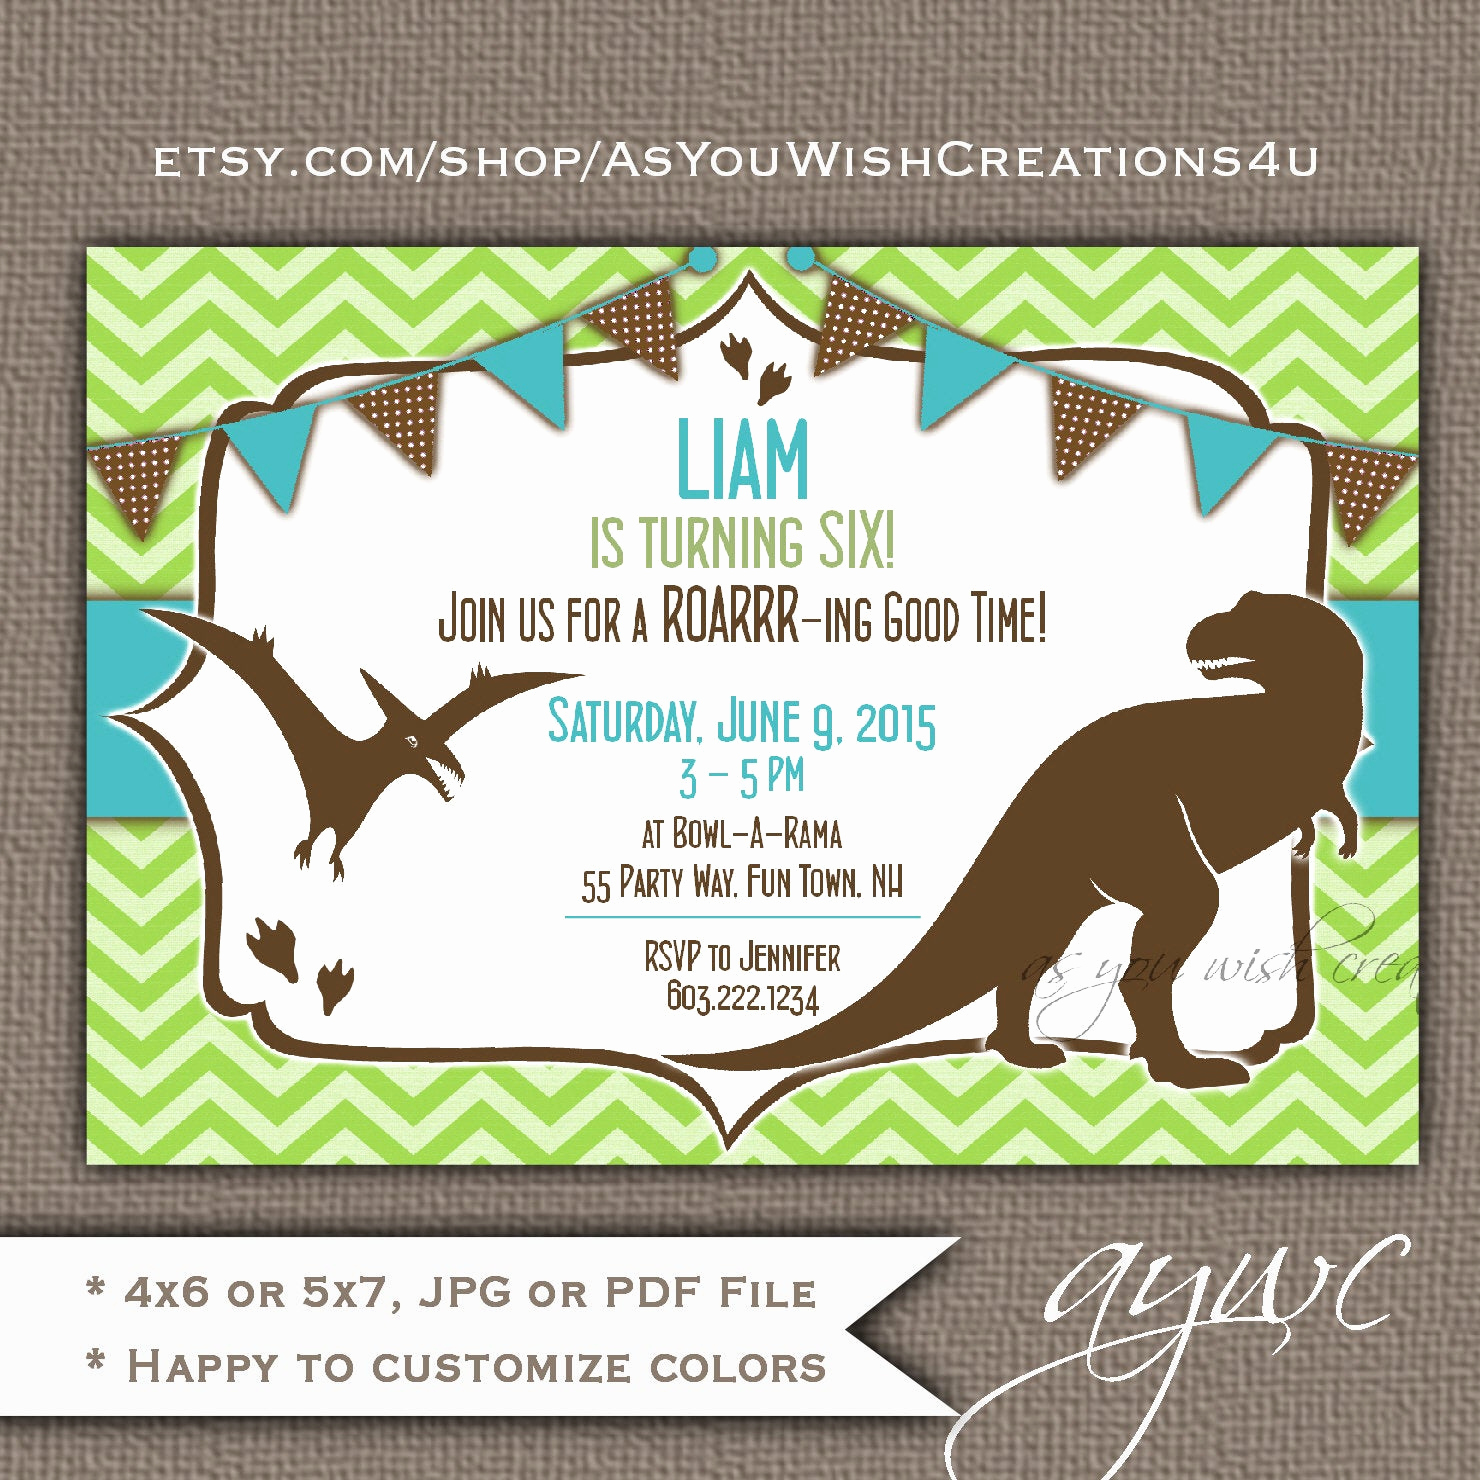 Dinosaur Birthday Invitation Wording Lovely Dinosaur Birthday Party Invitation for A Boy or Girl 3rd